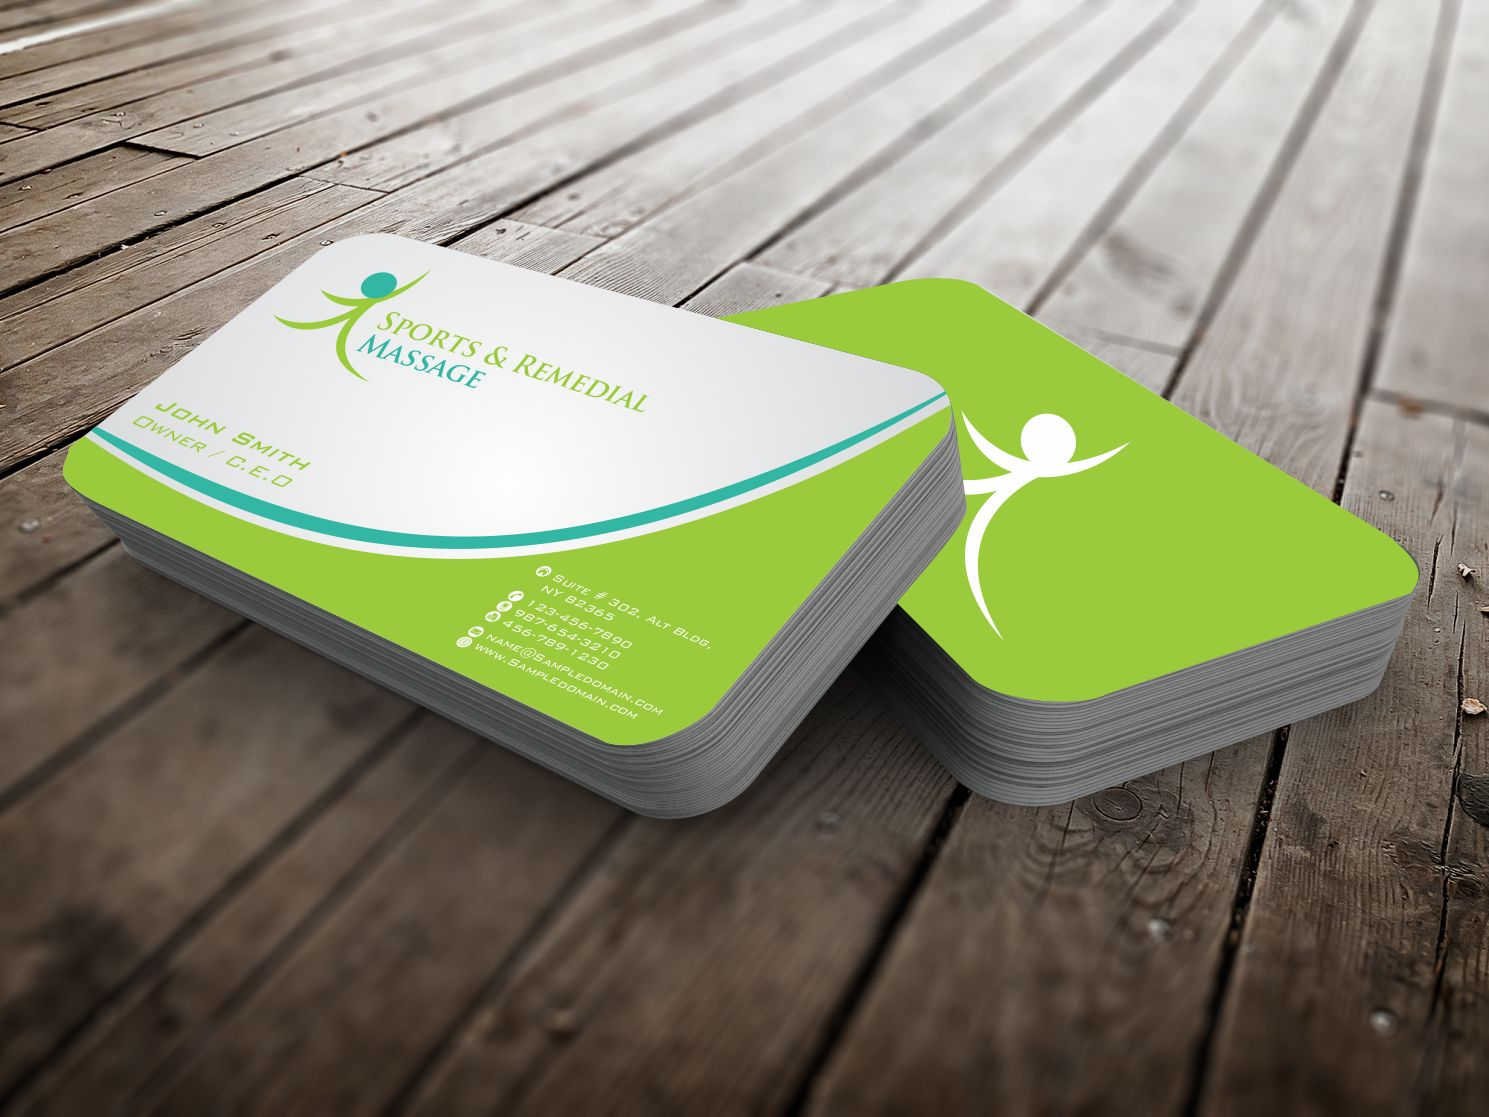 Massage Business Card Design for a Company by szabist | Design #4343680